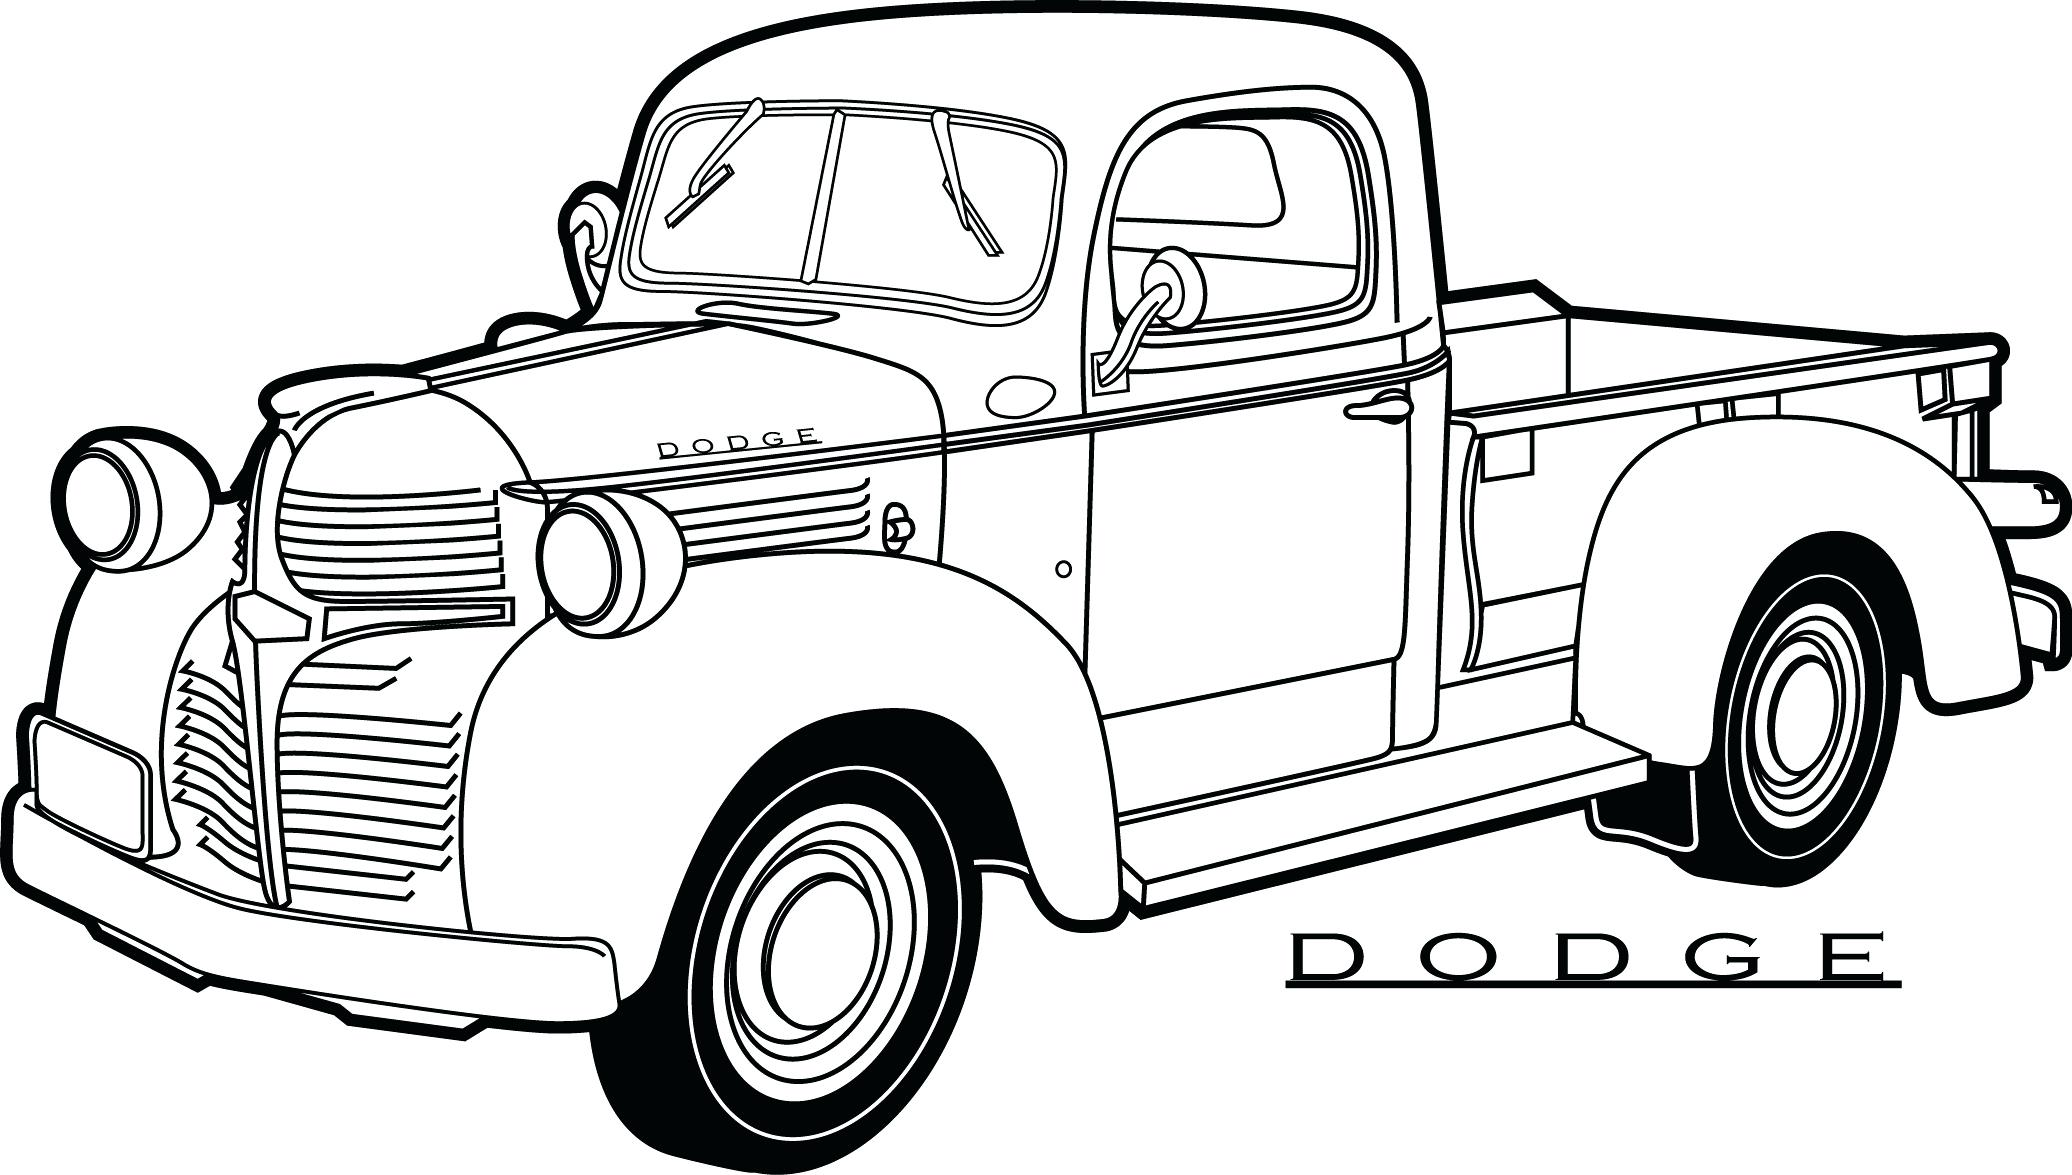 Truck Coloring Pages | Free download on ClipArtMag